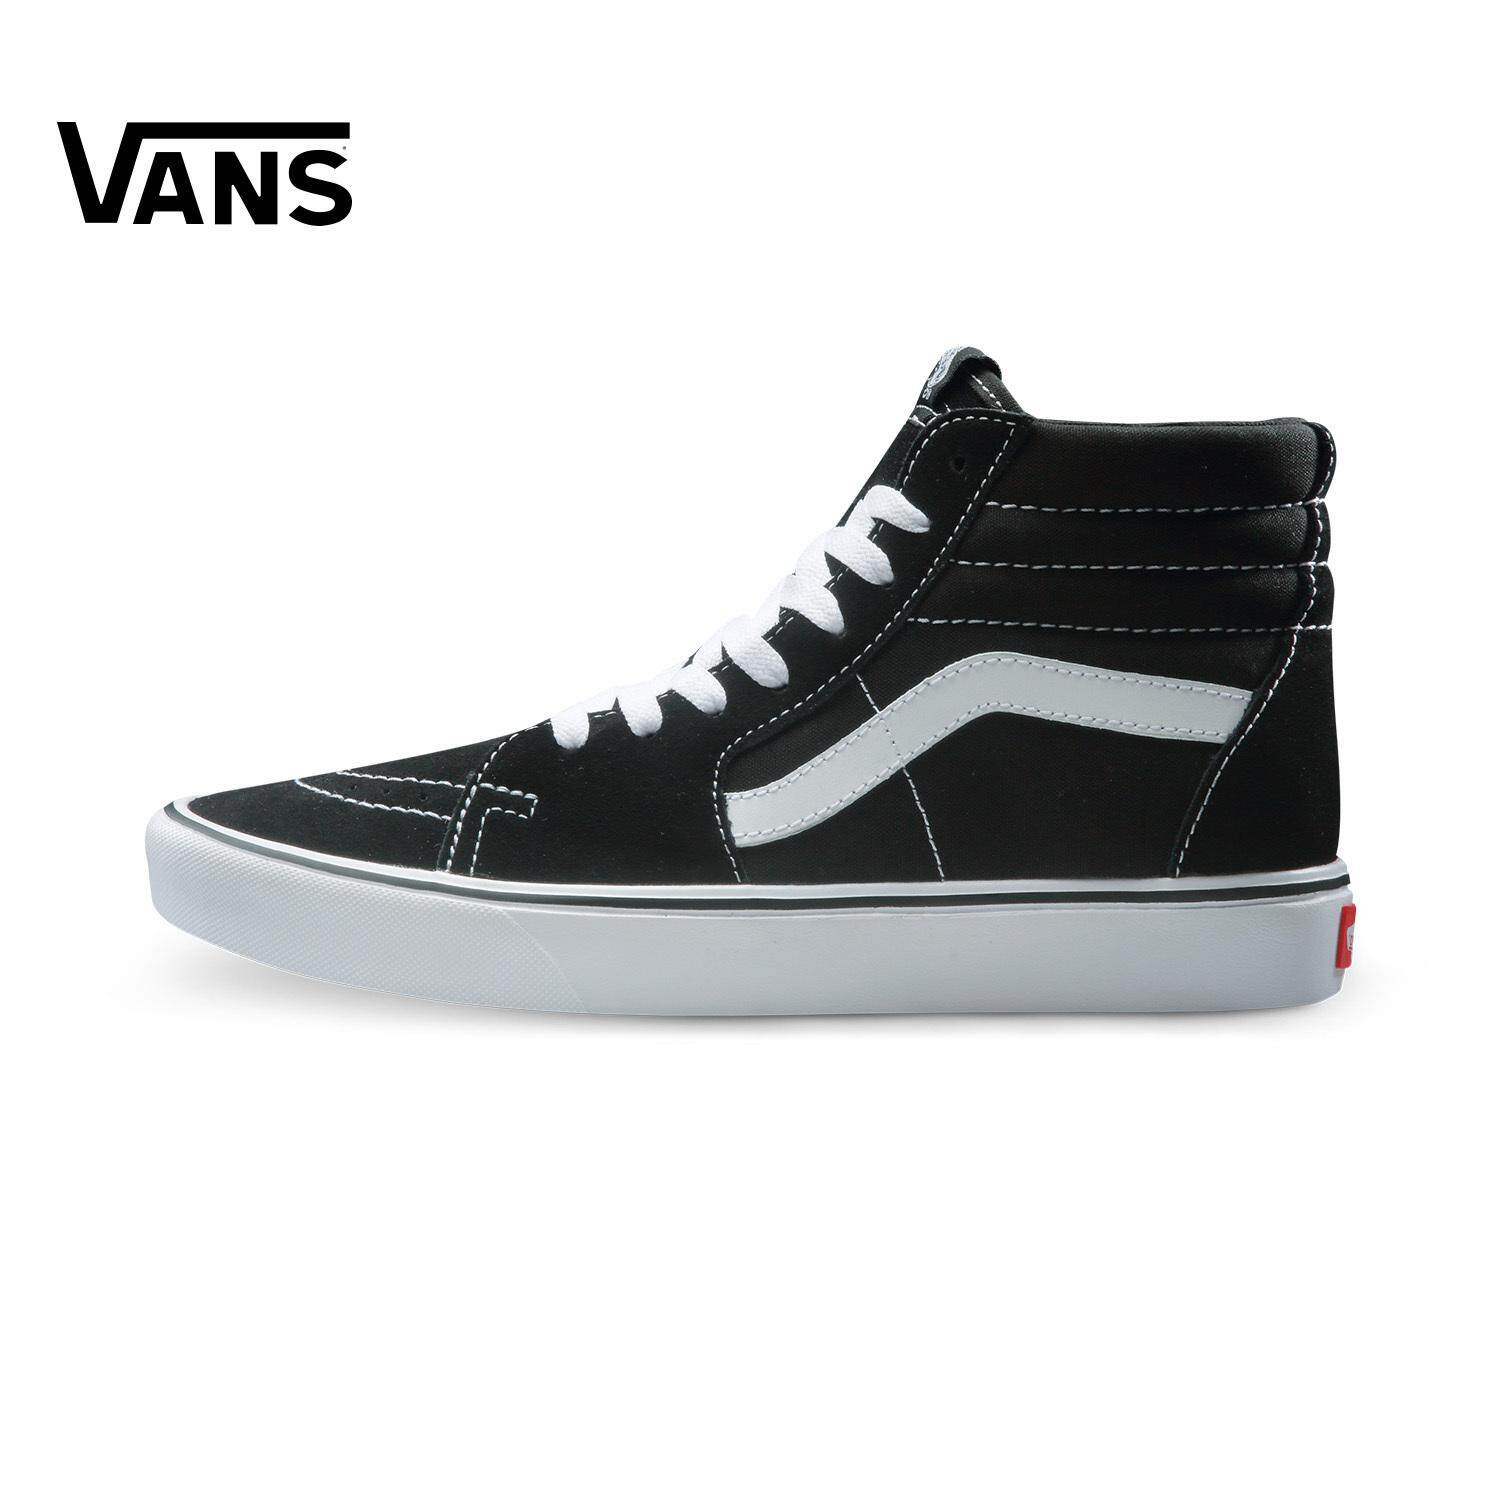 Lightweight A Vans Men s Shoes Women s Shoes Hight-top Sk8-Hi Skateboard  Shoes VN0A2Z5YIJU bde45bc0d2a6